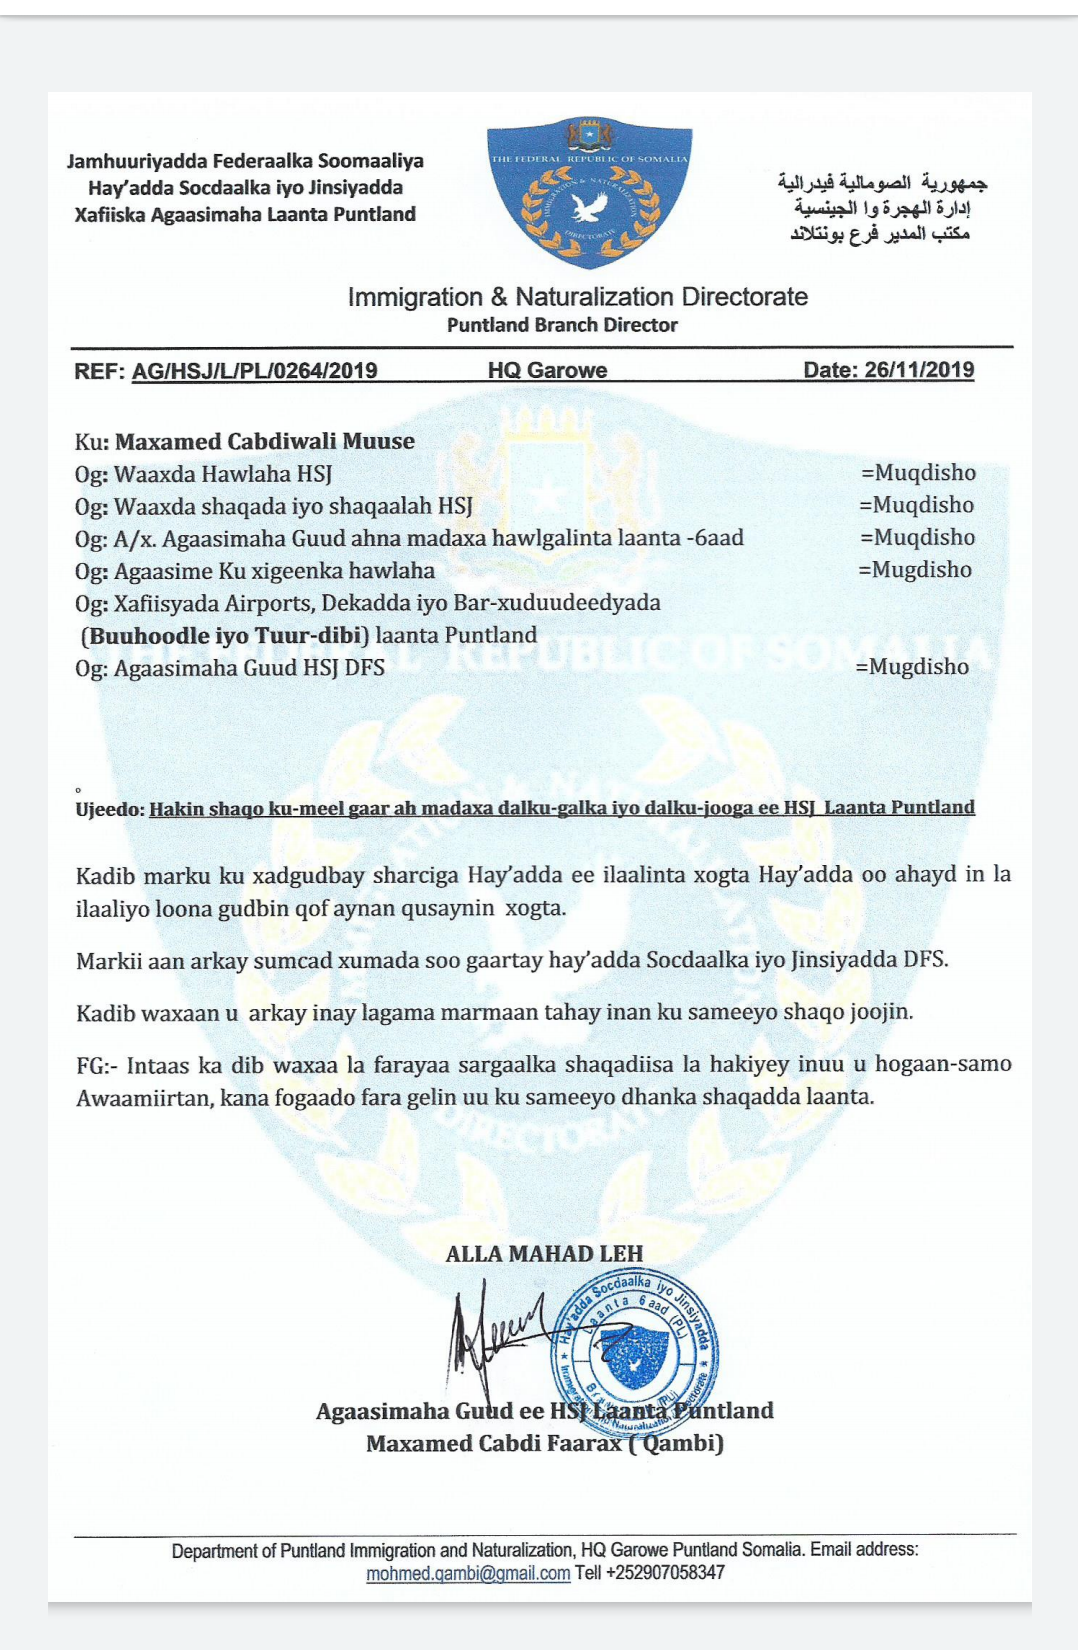 UNLAWFUL DISMISSAL OF SOMALIA'S HEAD OF IMMIGRATION OFFICE IN PUNTLAND